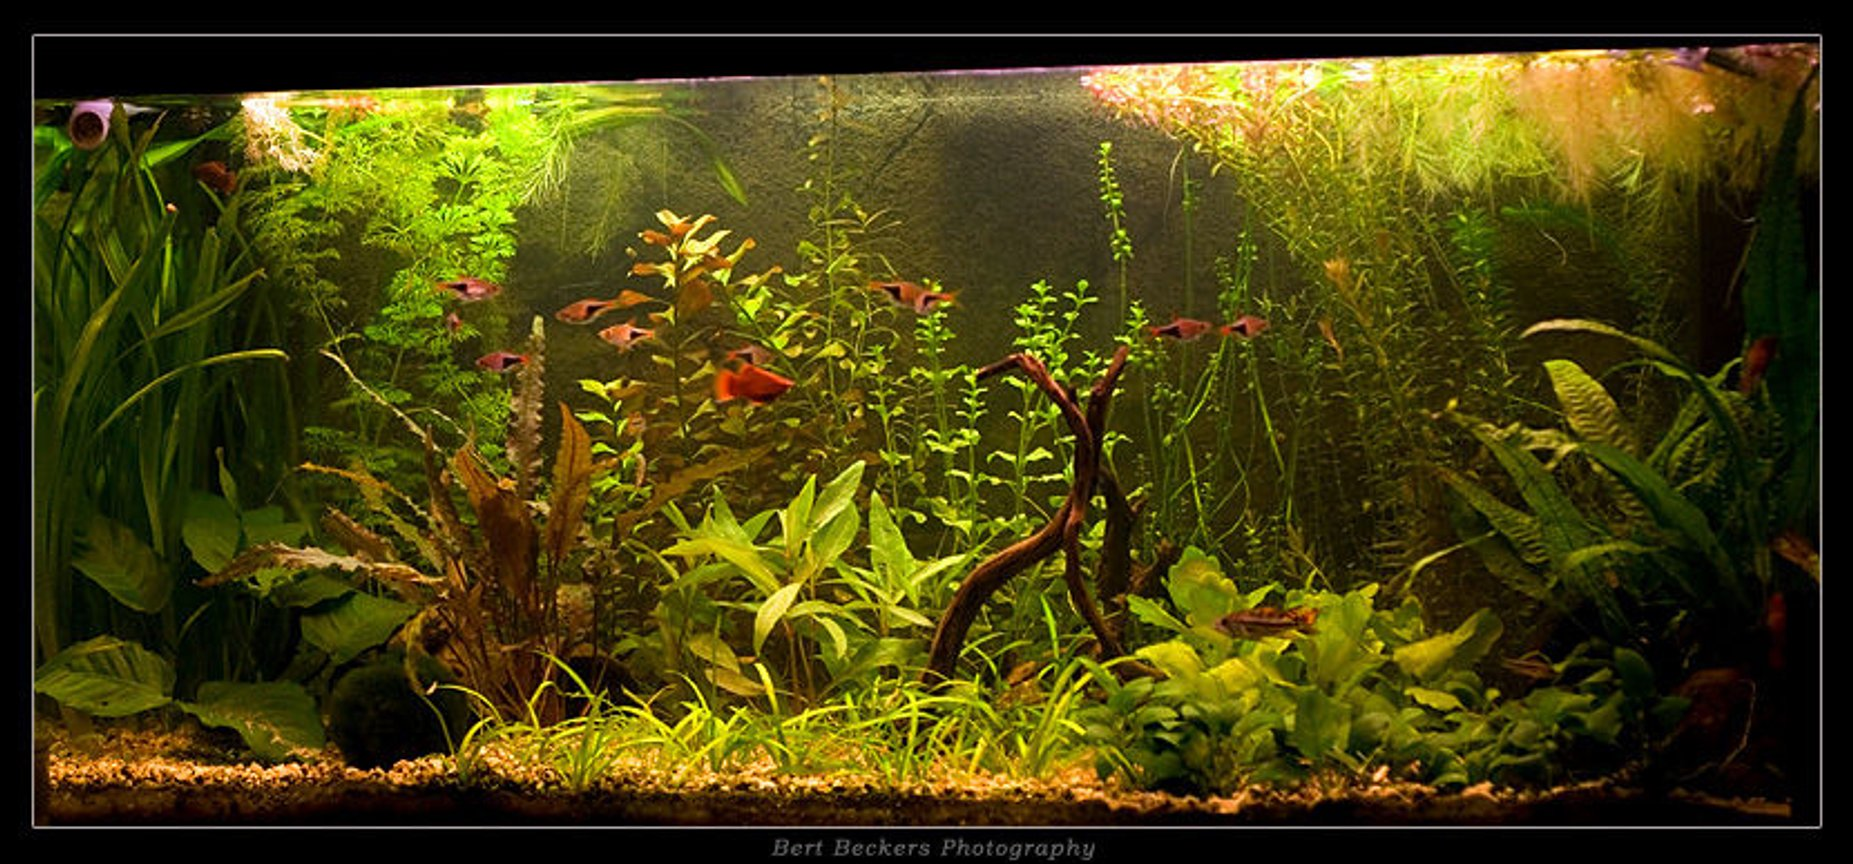 50 gallons planted tank (mostly live plants and fish) - My planted community tank.. Juwel Rio 180 2 TL lights with reflectors No CO2 installation Weekly dosage of Easylife Profito and Ferro Daily dosage of Easylife Easycarbo Thats all.. Fish kept: - 3x Apistogramma Cacatuoides Double Red - 4 Xiphophorus Maculatus - 10 Rasbora Heteromorpha - 3x Panghio Kuhli - 1x L201 catfish - 8x Japonica Shrimp